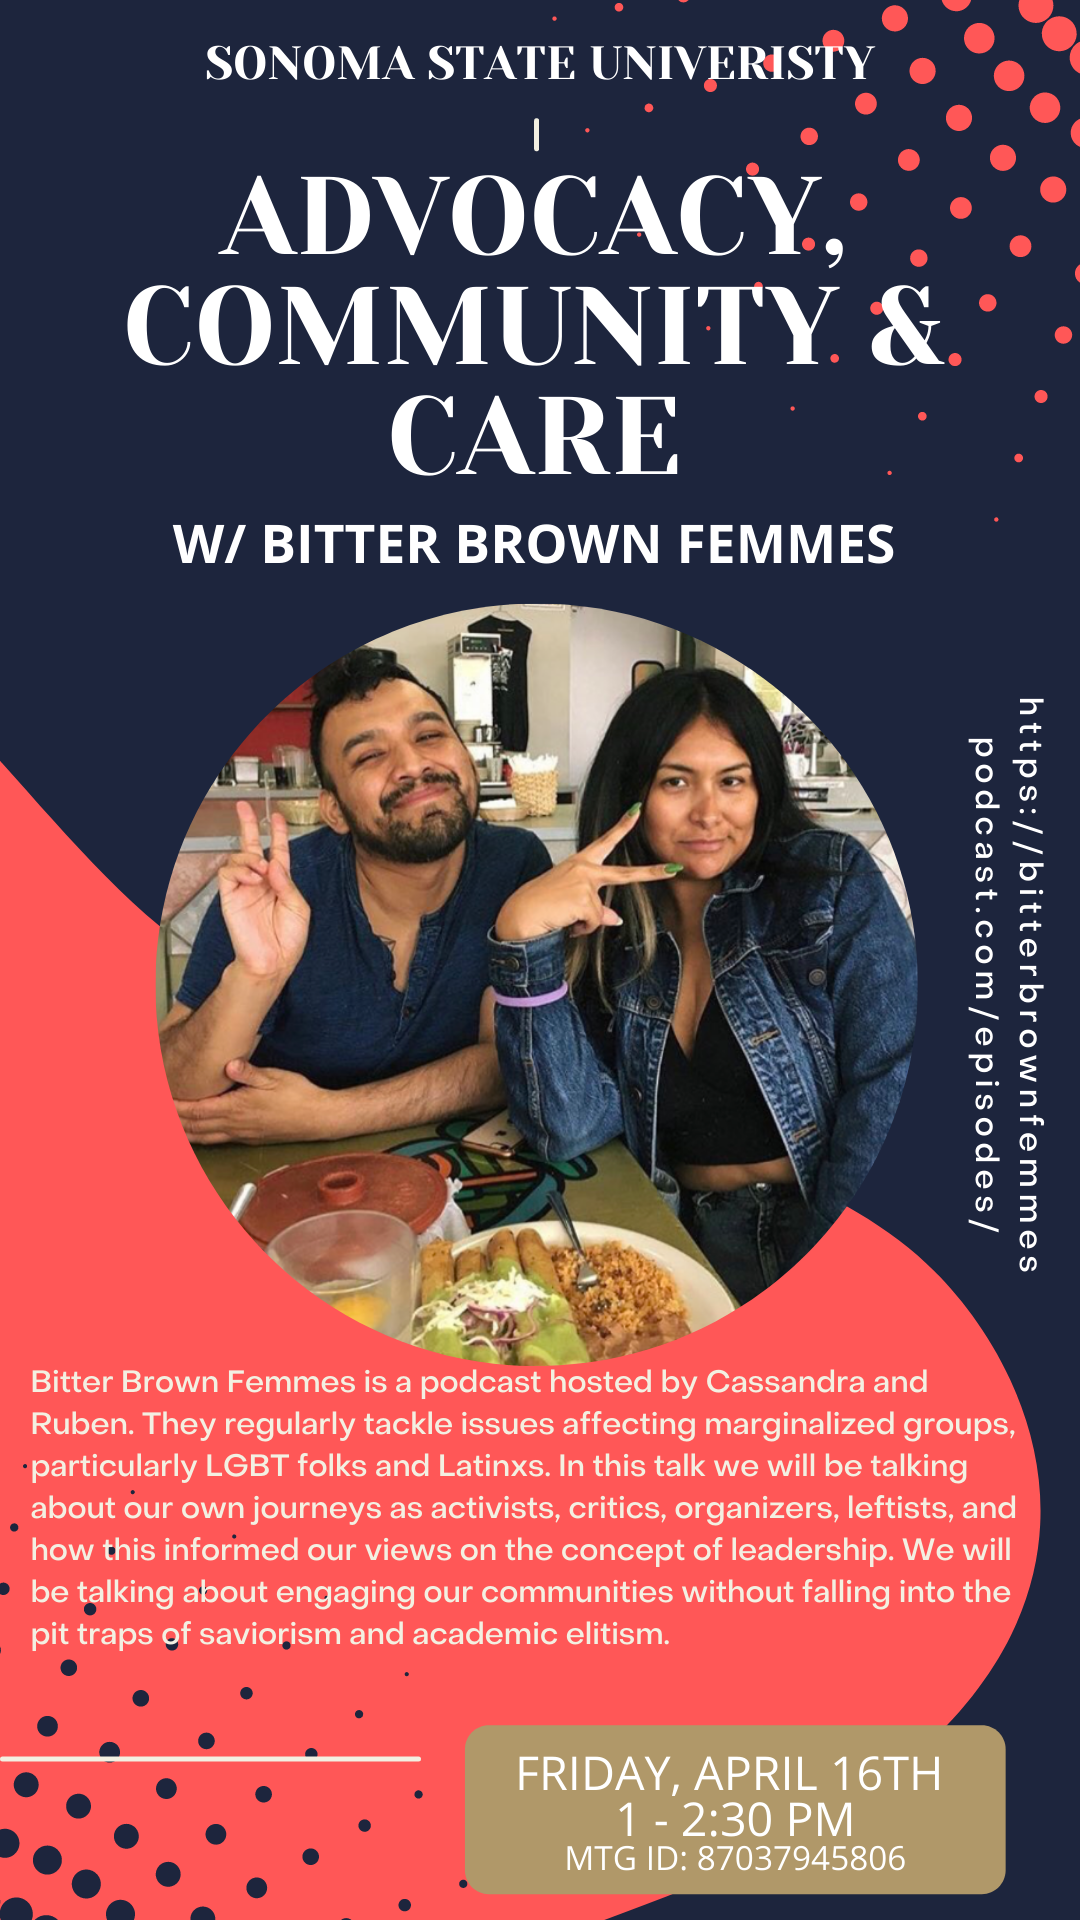 The event flyer for 'Advocacy, Community & Care' episode of the Bitter Brown Femmes podcast featuring an image of the podcast hosts posing together